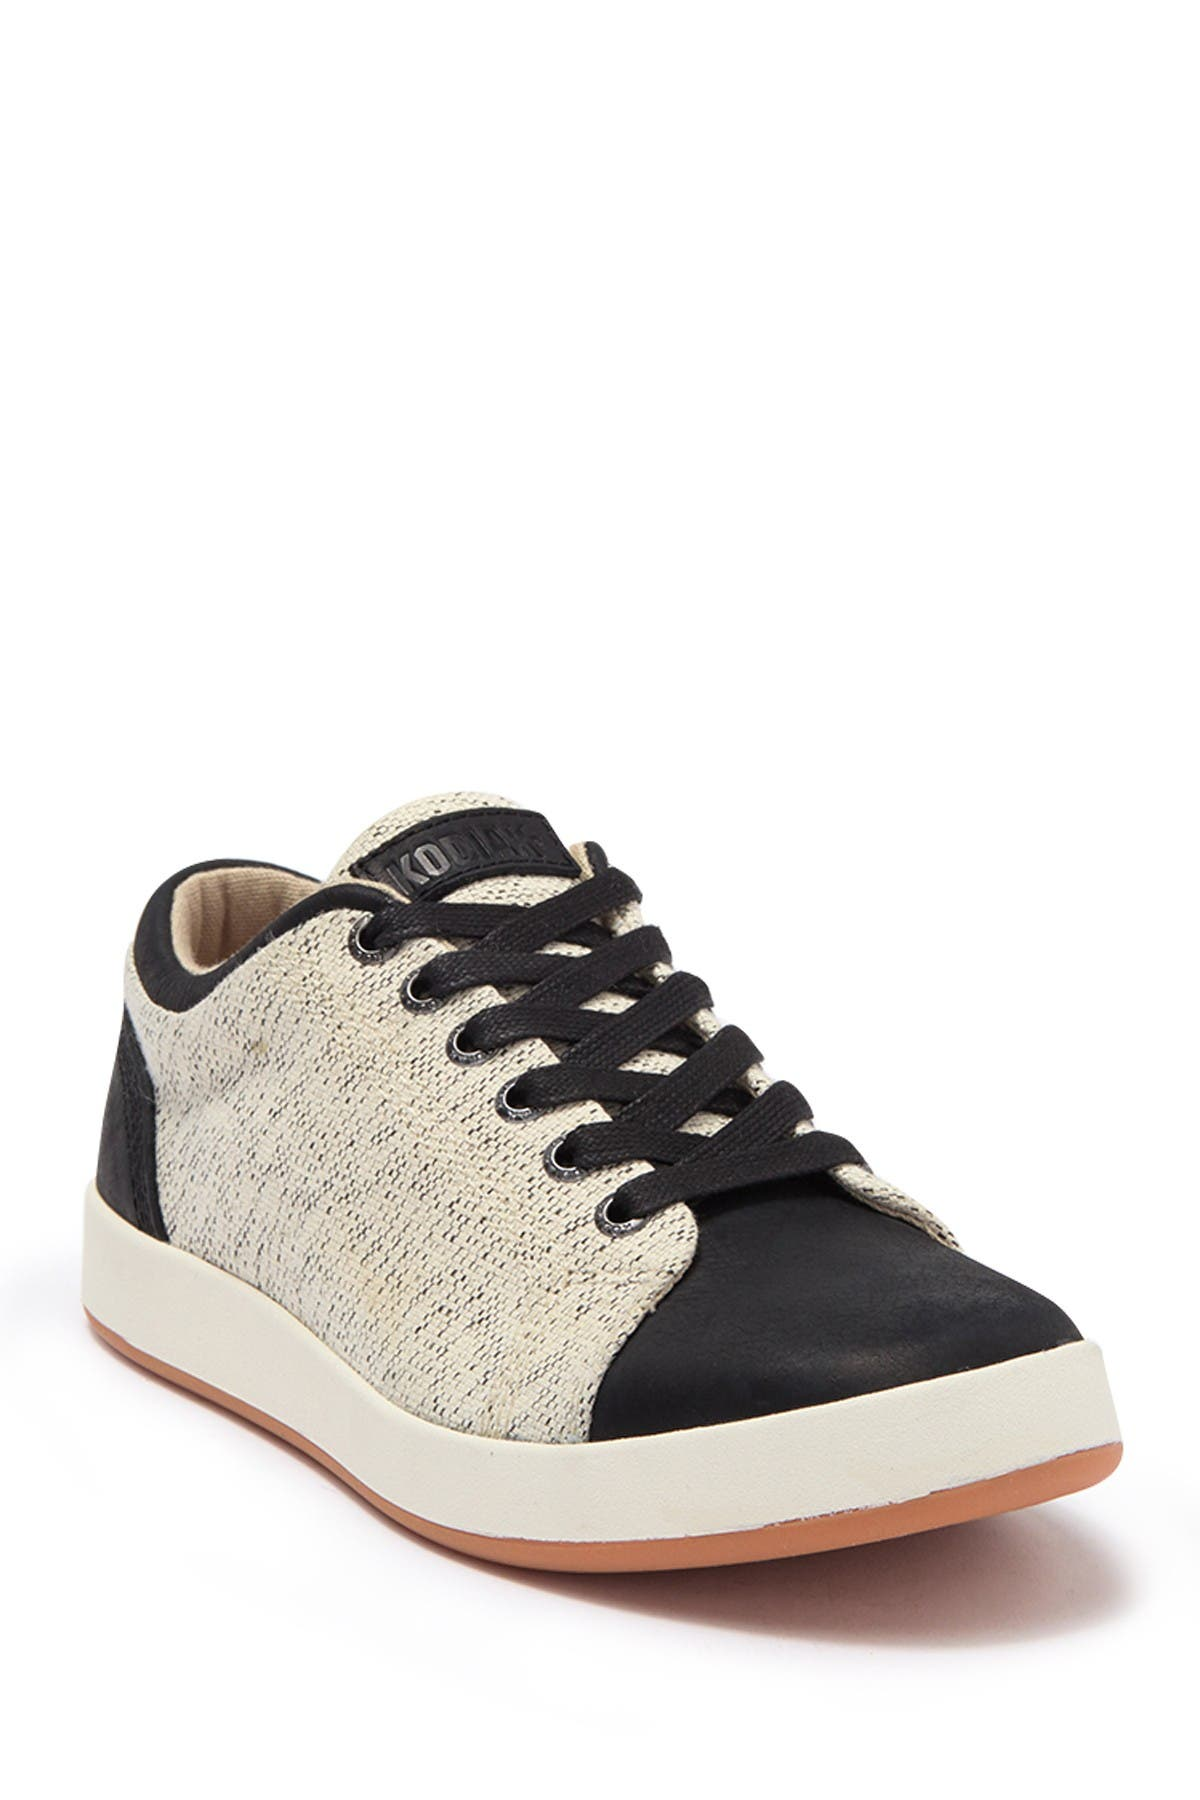 Image of Kodiak Indra Black & Cream Traction Textile Sneaker